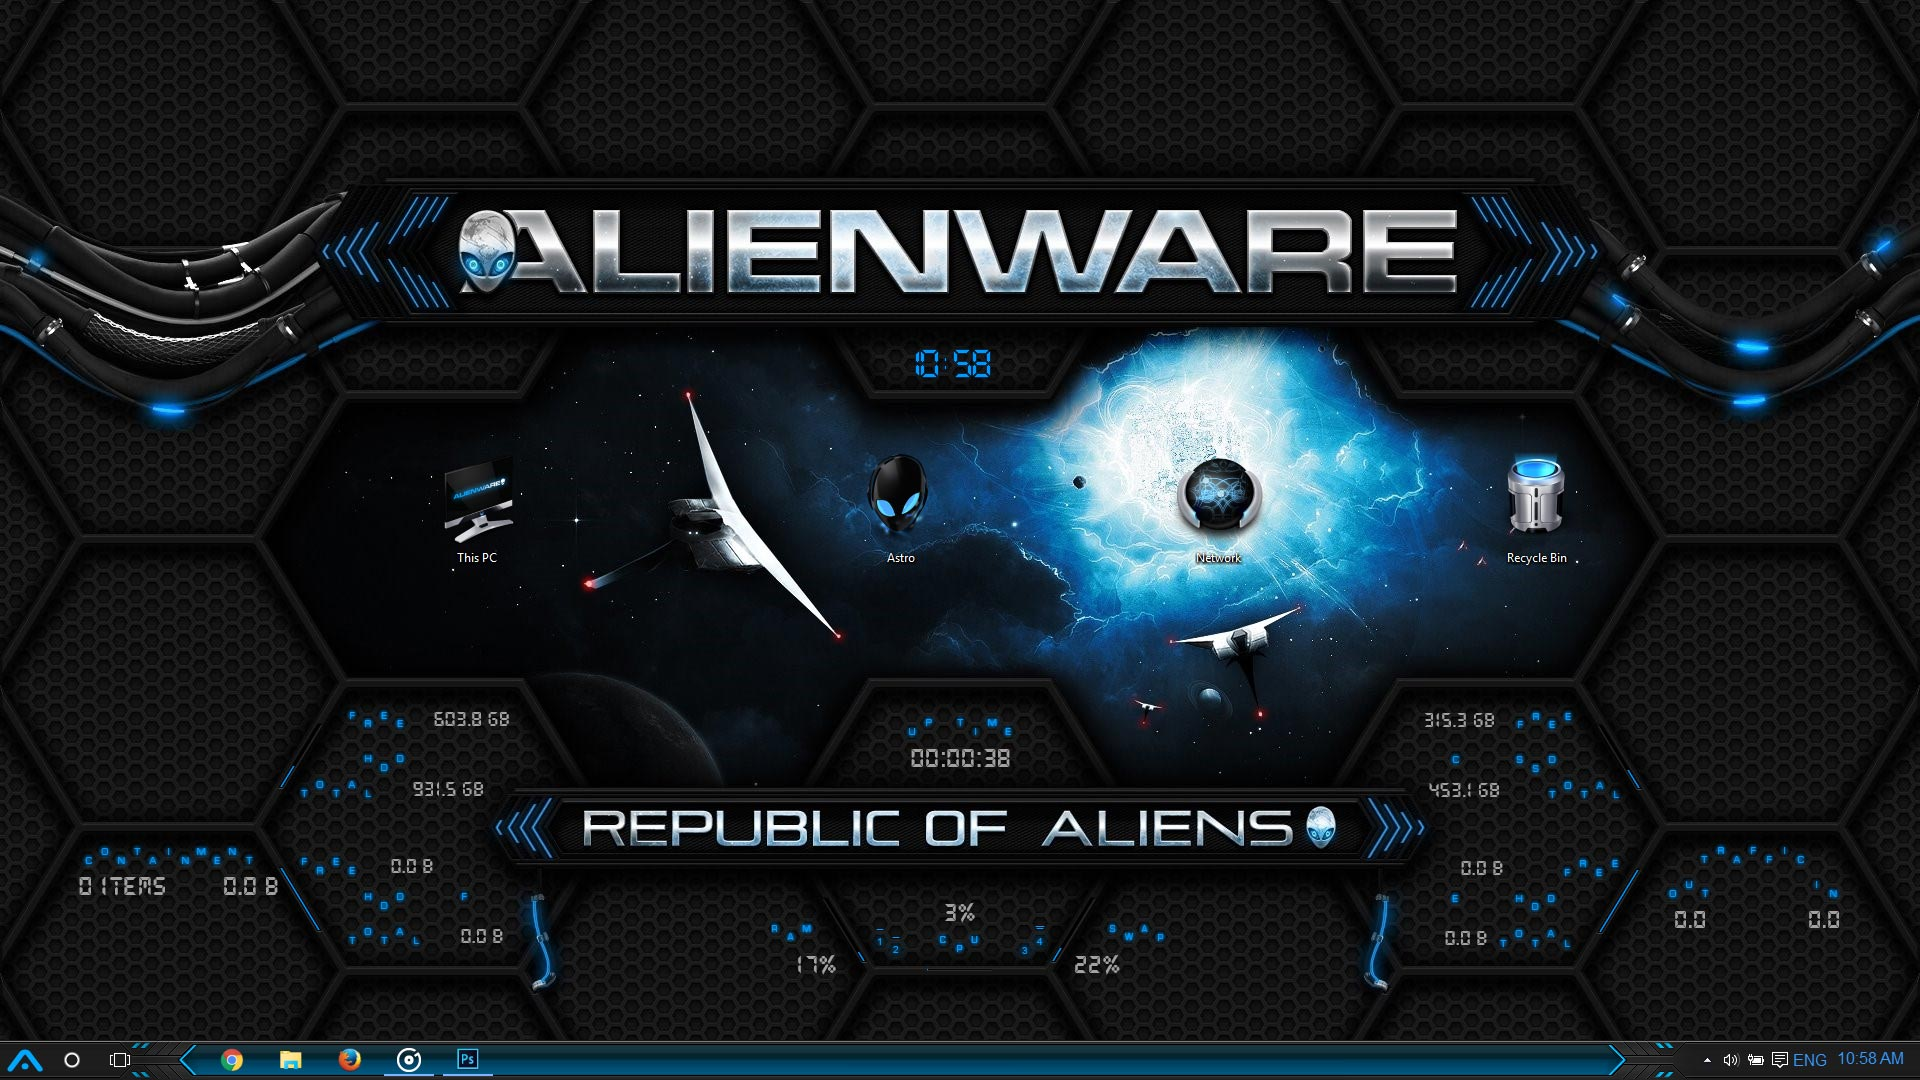 Ultimate Alienware Windows 10 Theme